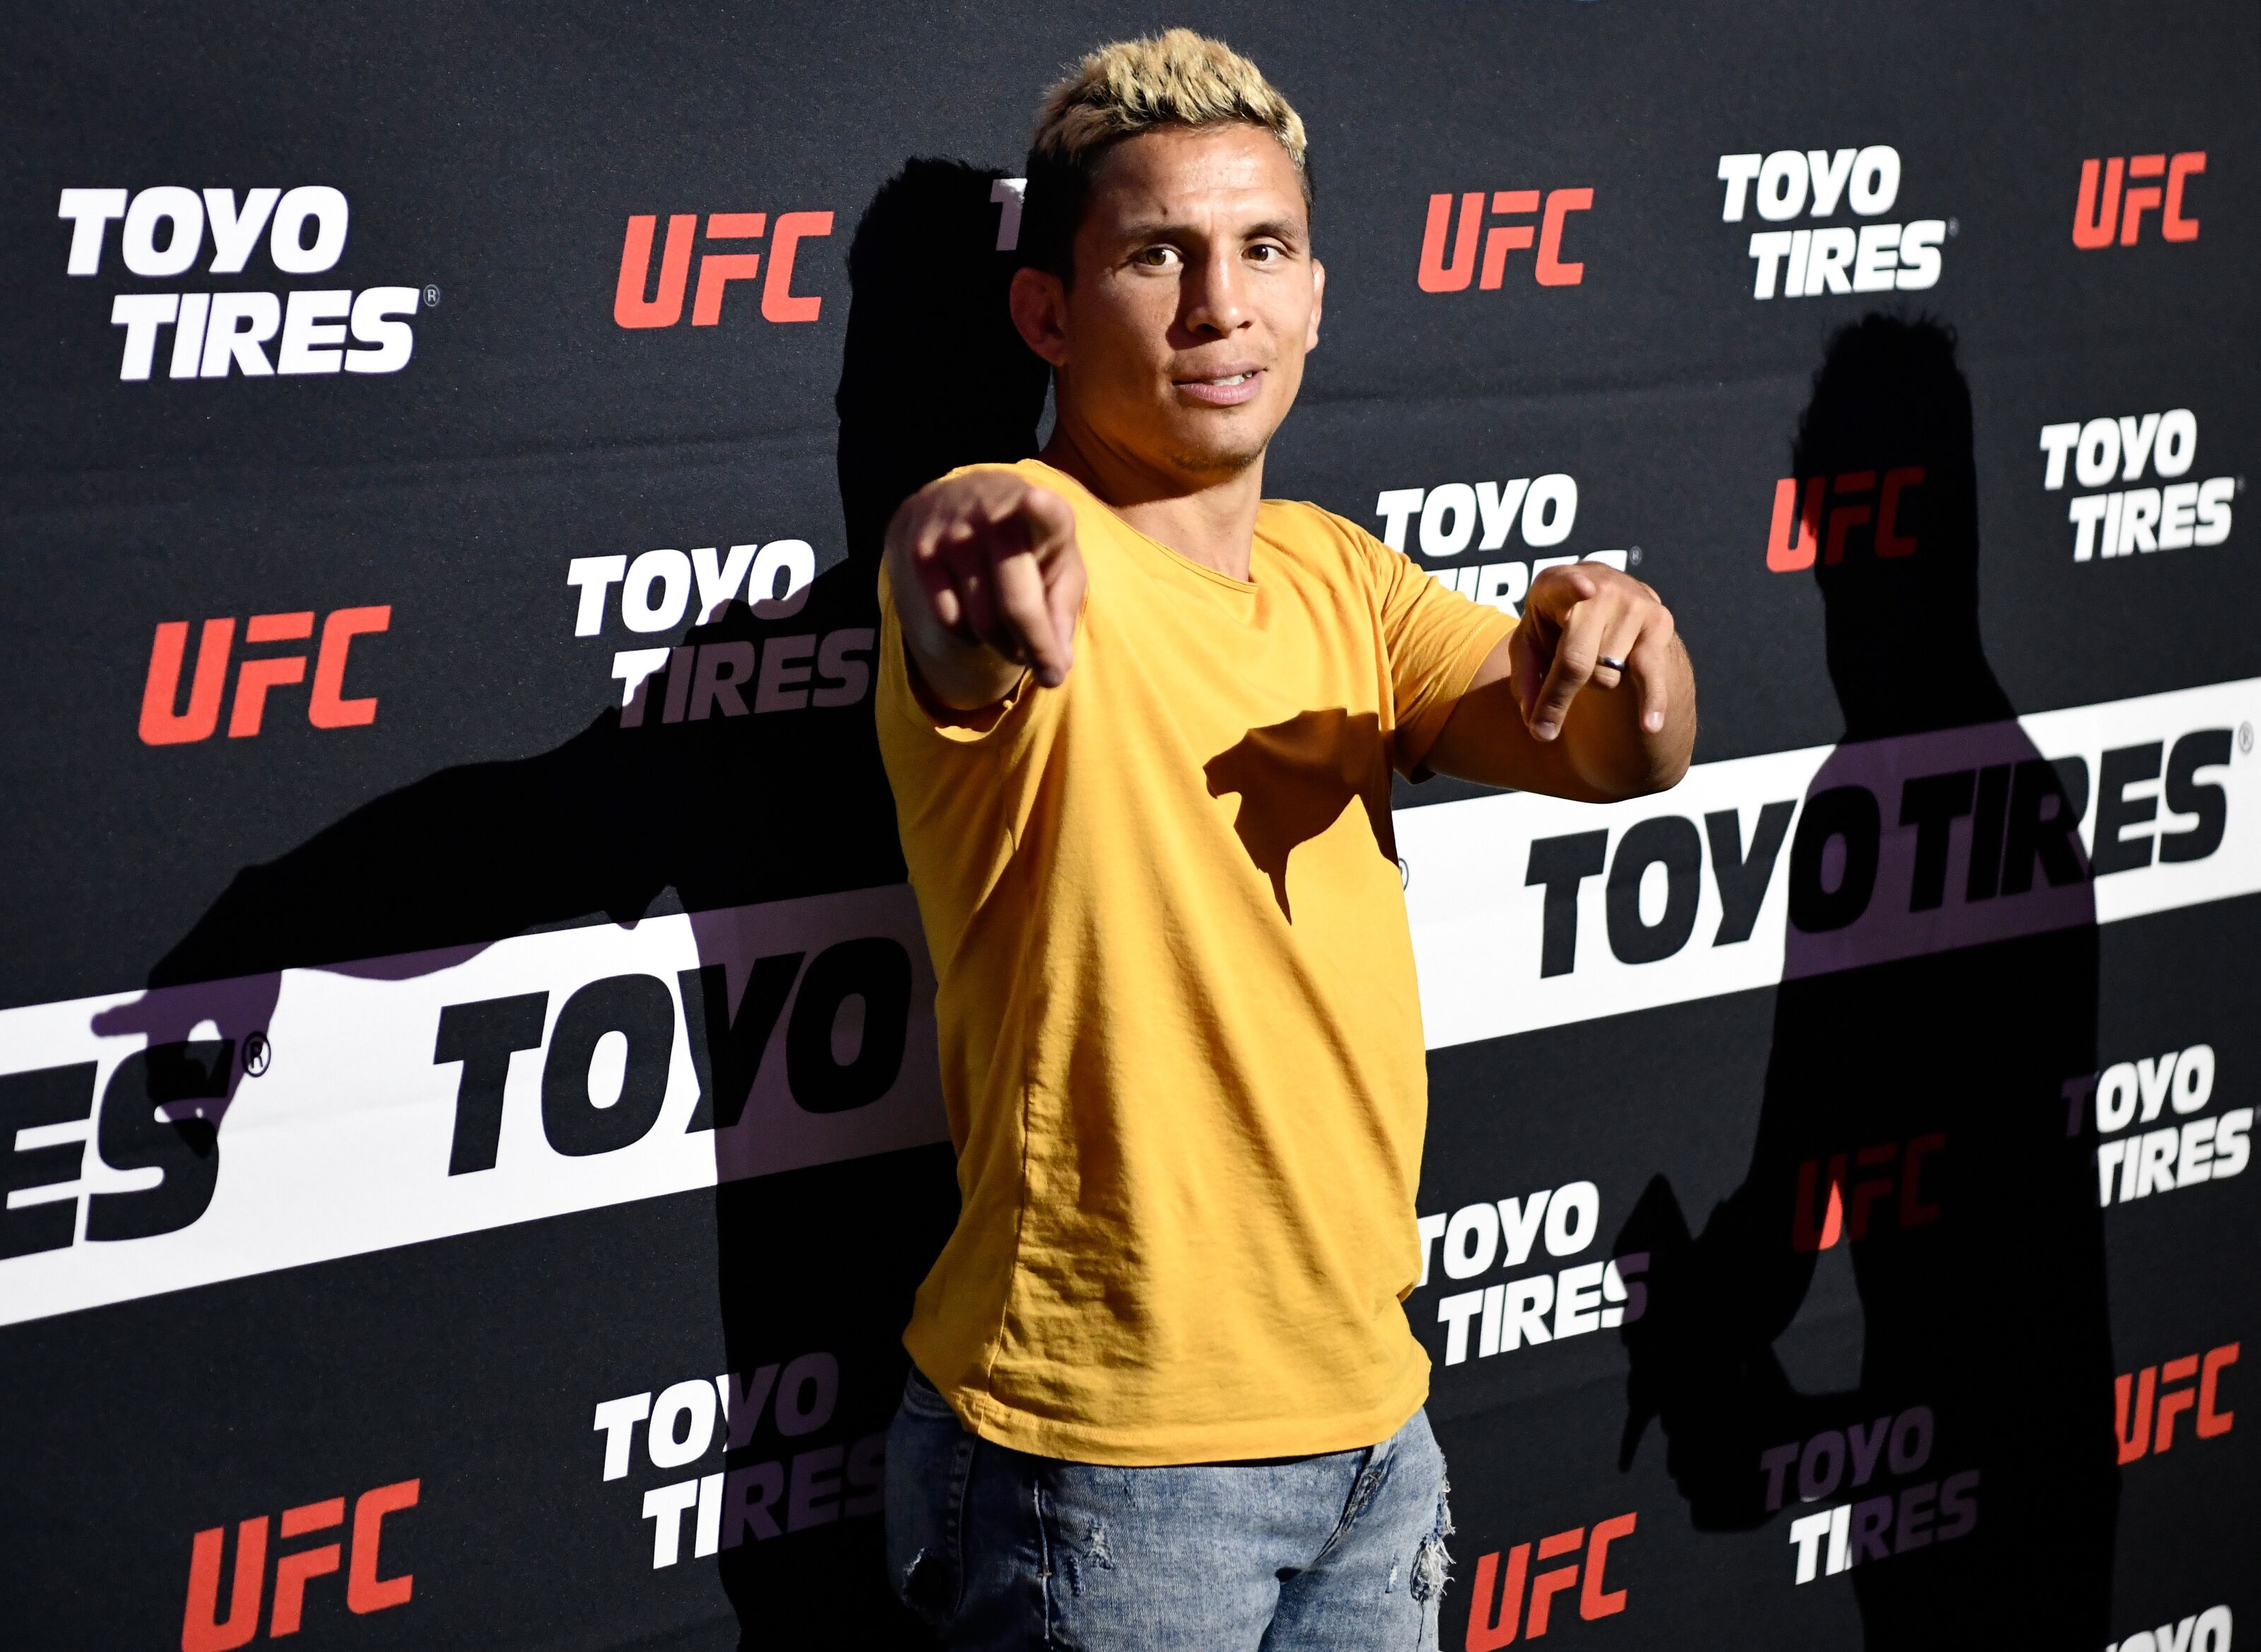 LAS VEGAS, NEVADA - JULY 07: UFC flyweight fighter Joseph Benavidez interacts with fans during the UFC Fan Experience at the Downtown Las Vegas Events Center on July 7, 2018 in Las Vegas, Nevada. (Photo by Brandon Magnus/Zuffa LLC/Zuffa LLC via Getty Images)